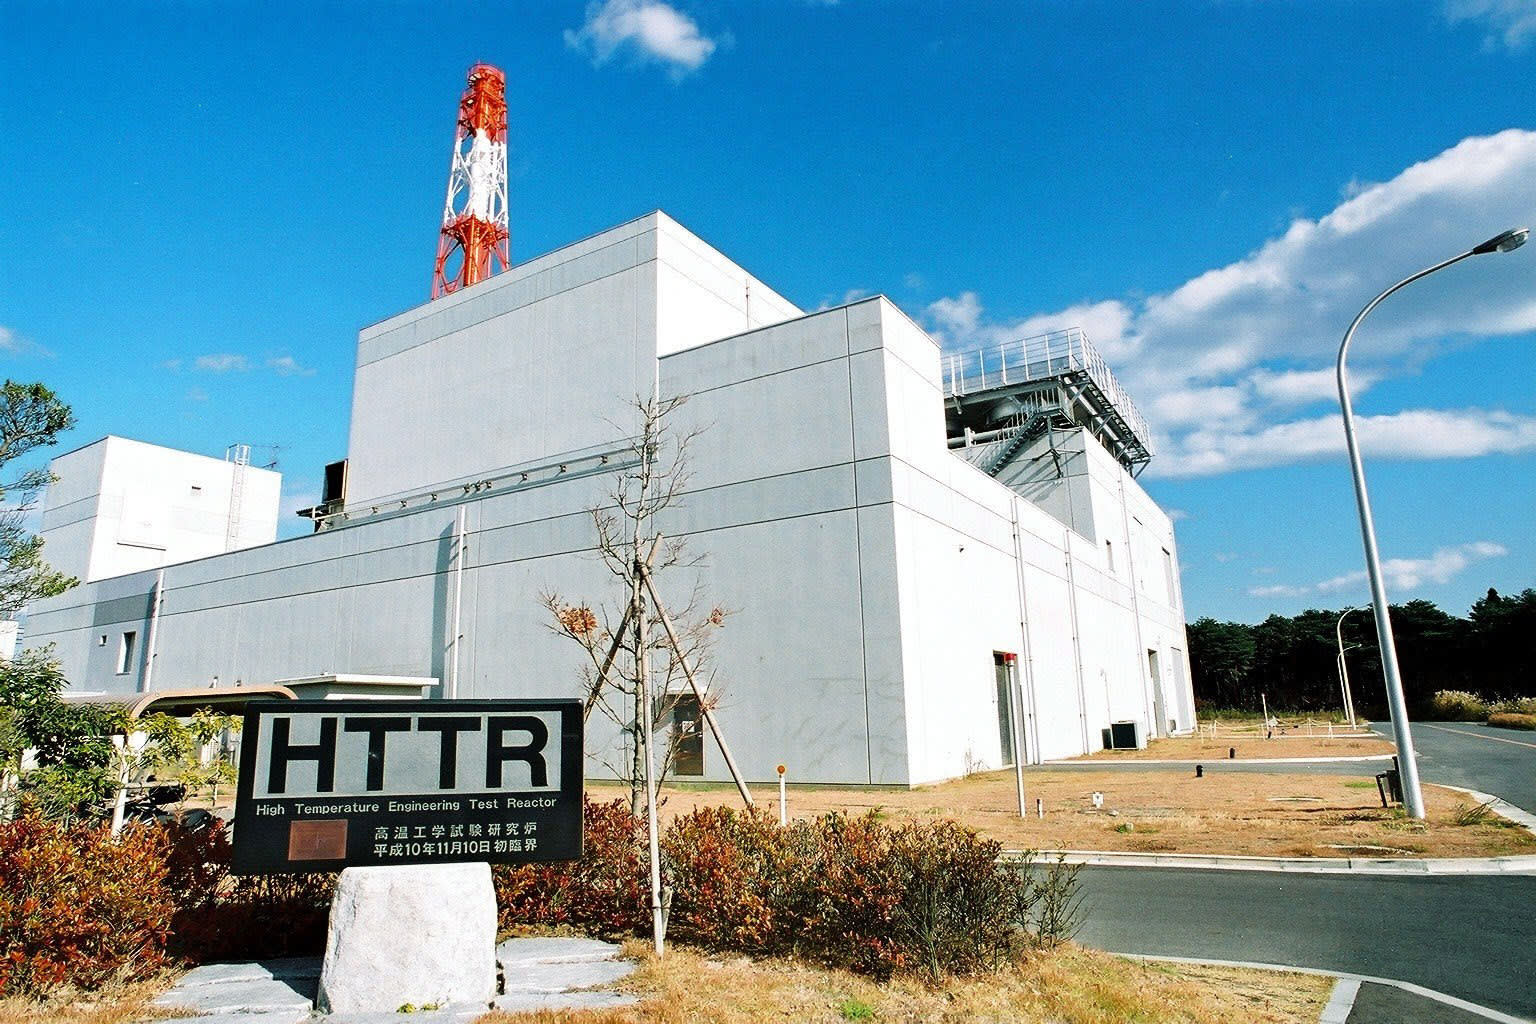 https---s3-ap-northeast-1.amazonaws.com-psh-ex-ftnikkei-3937bb4-images-8-4-0-4-11354048-1-eng-GB-1221N-nuclear-reactor-2